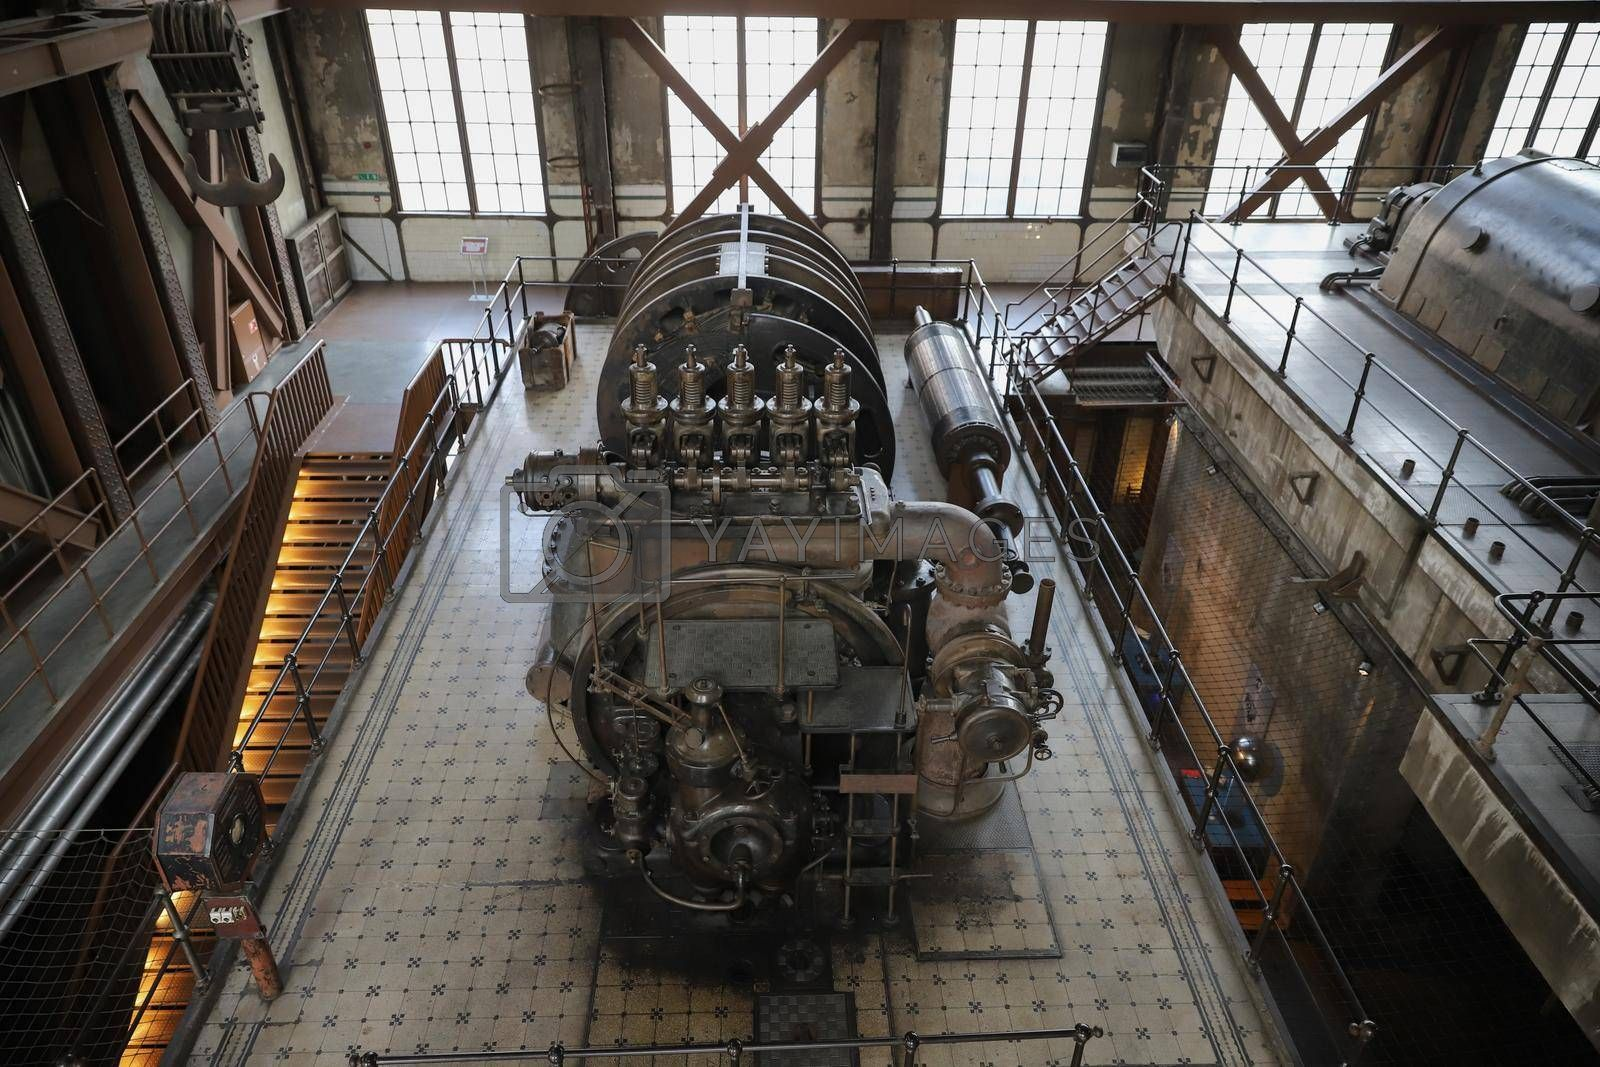 Old Engine of an old Power Plant